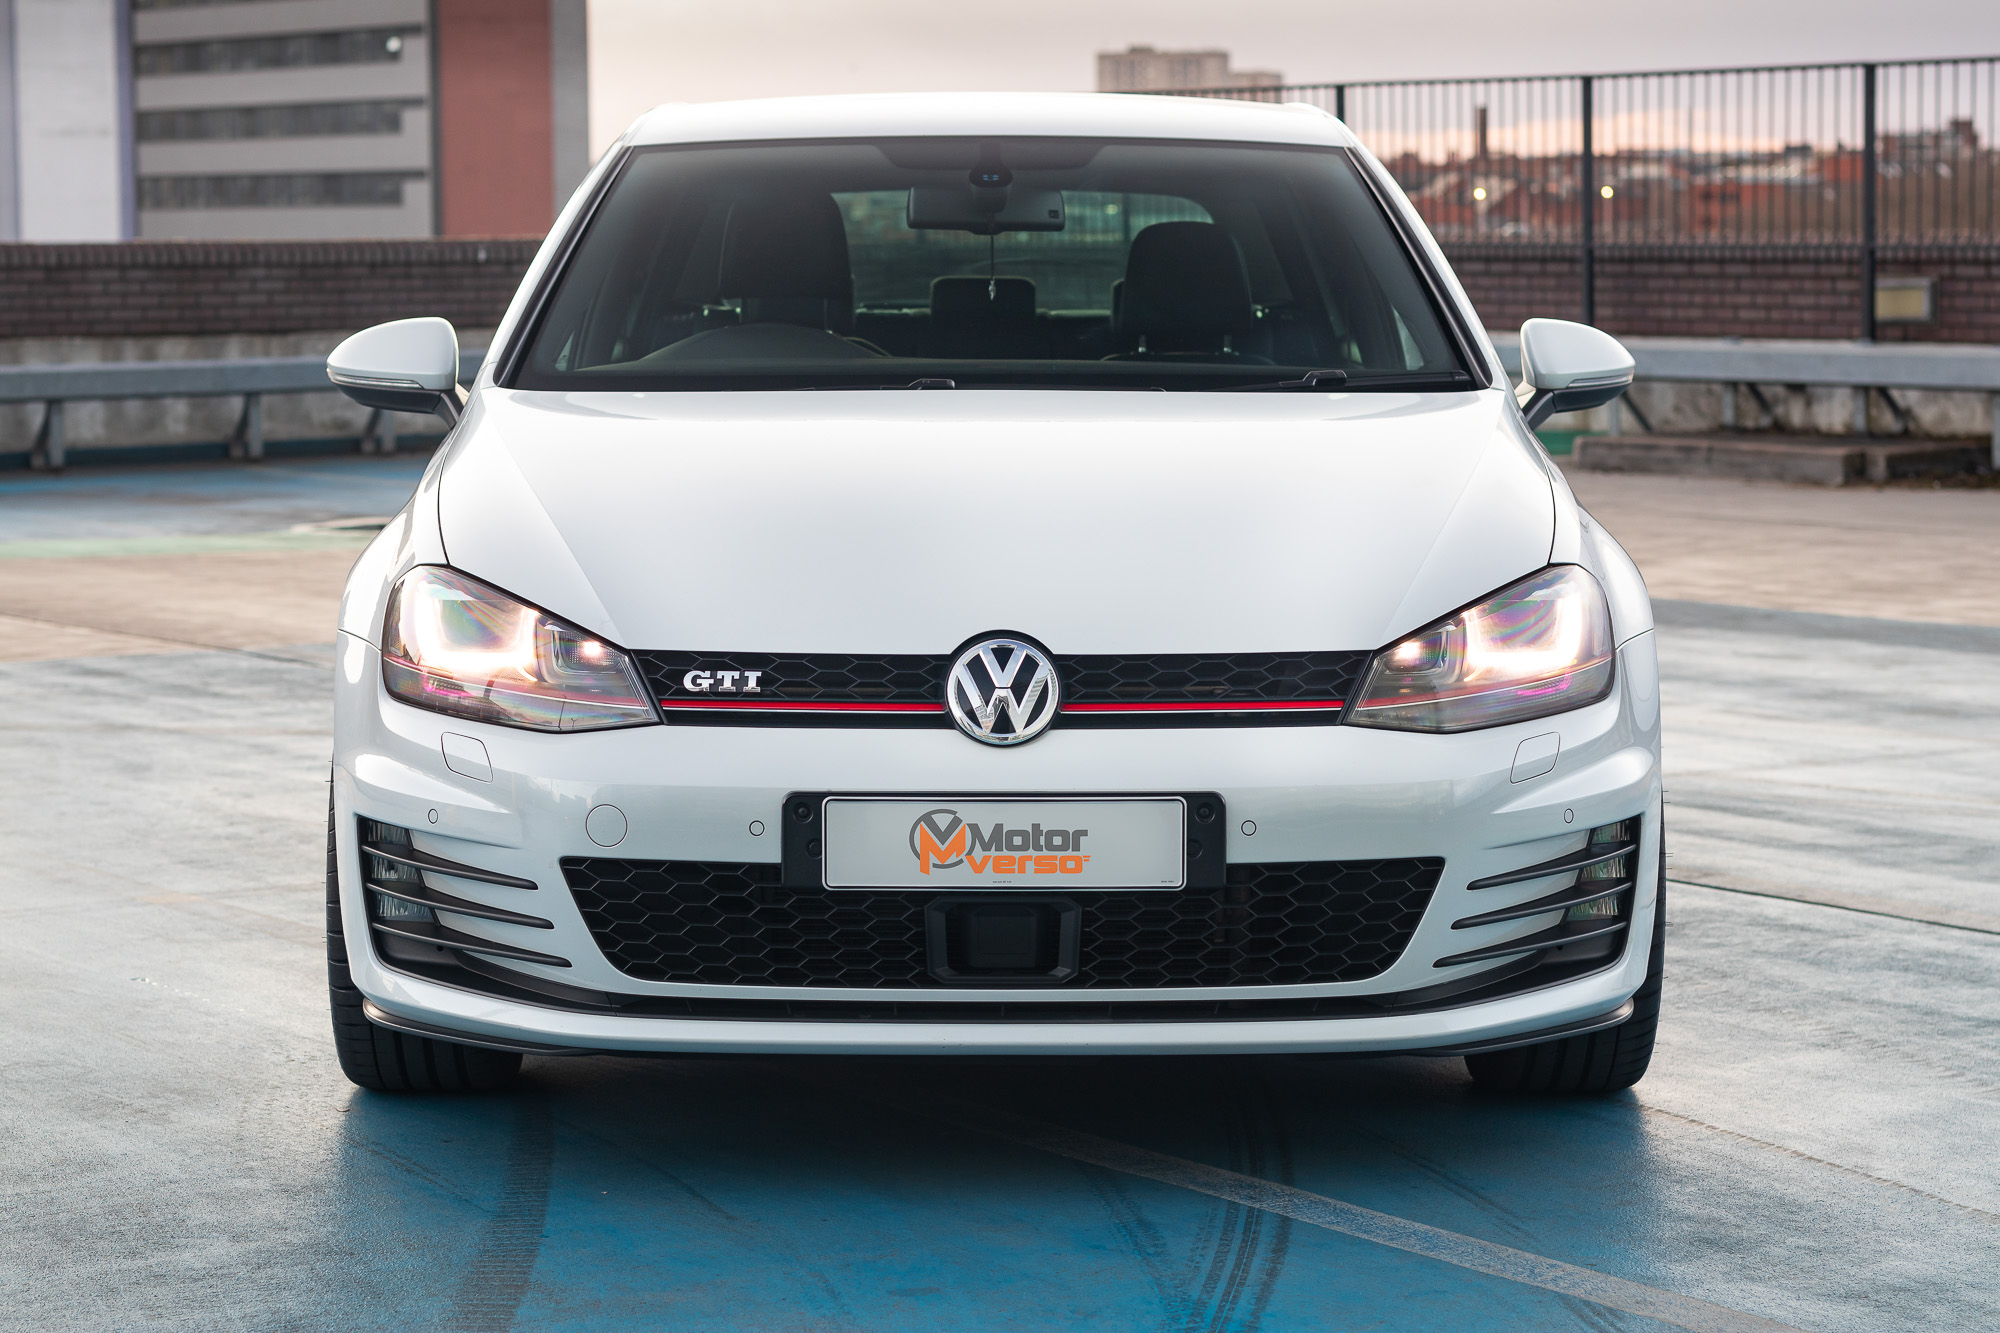 The Vw Golf Mk7 Gti Project